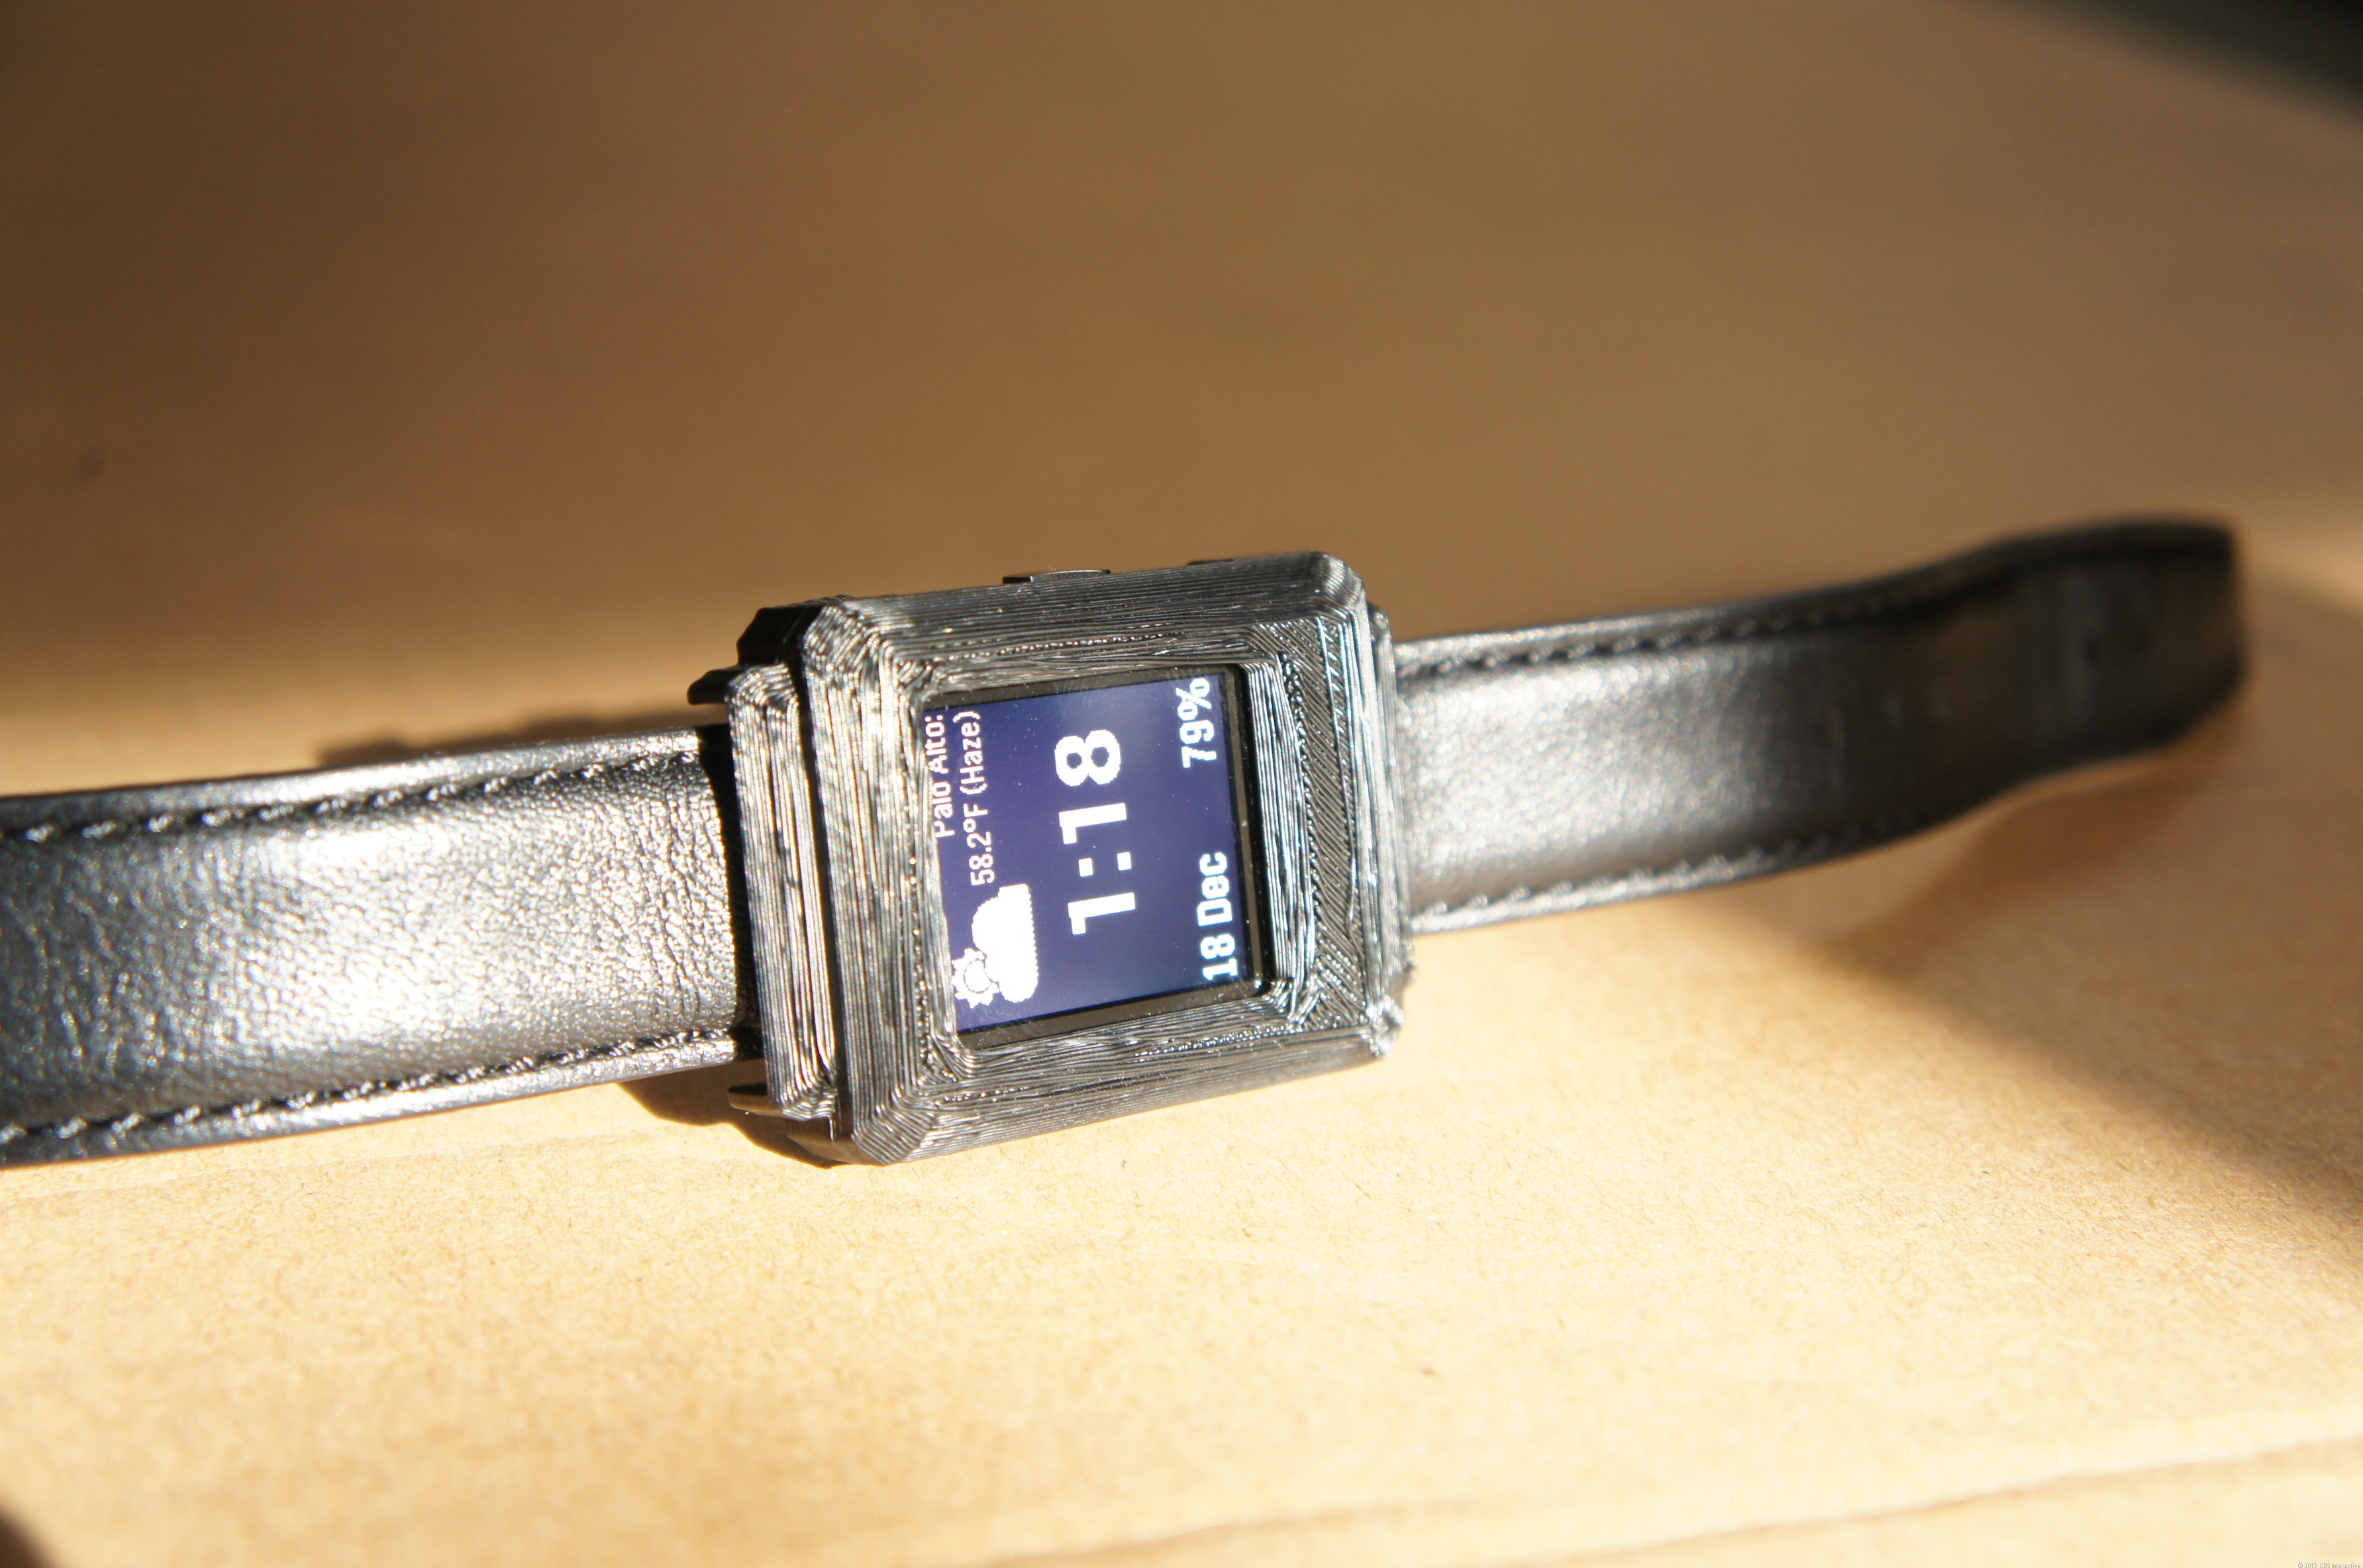 A Pebble Steel hiding in a 3D-printed case, used for testing in public.